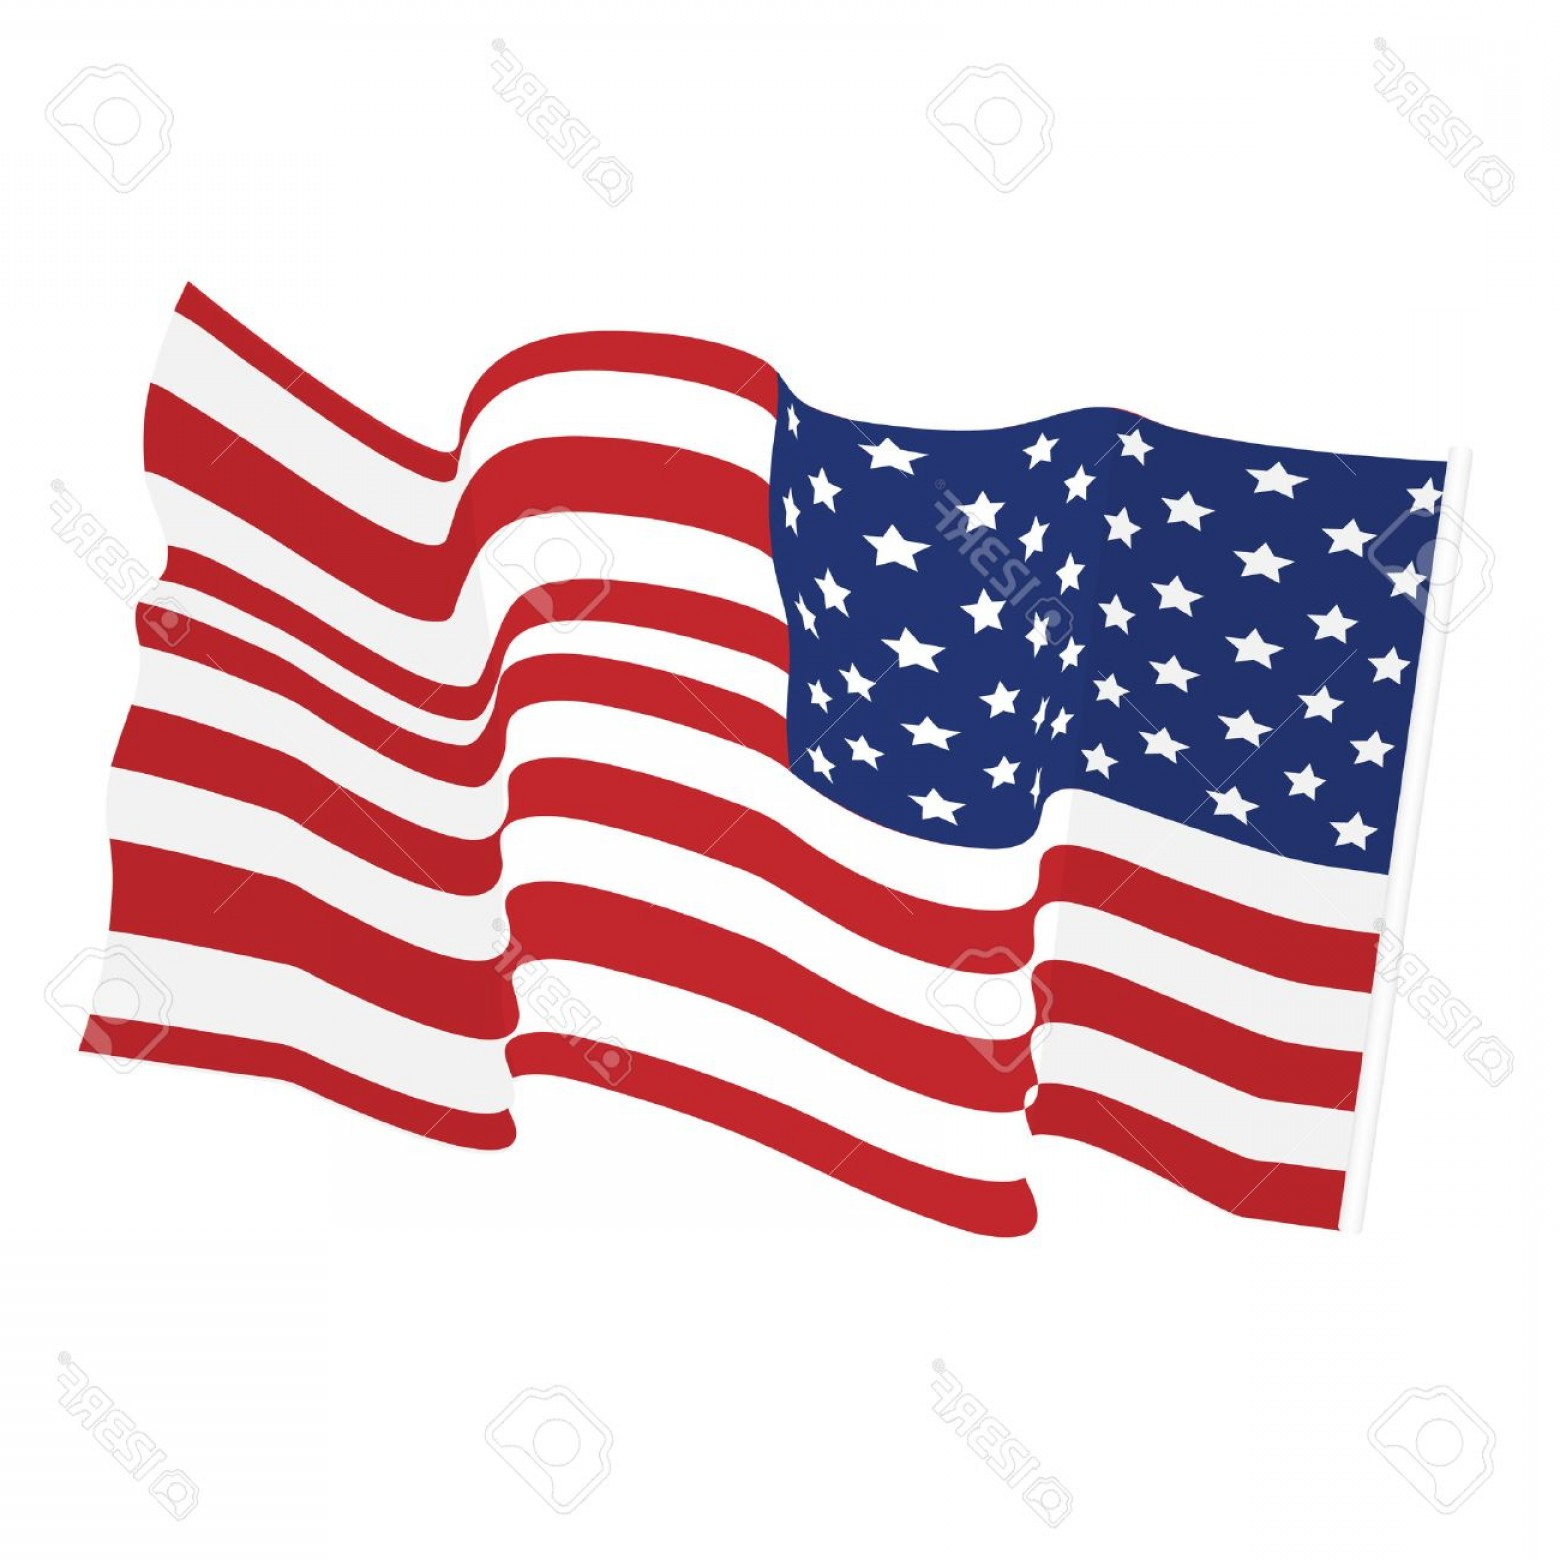 American Flag Stars Only Vector: Photostock Vector American Waving Flag Vector Icon National Symbol Red White And Blue With Stars